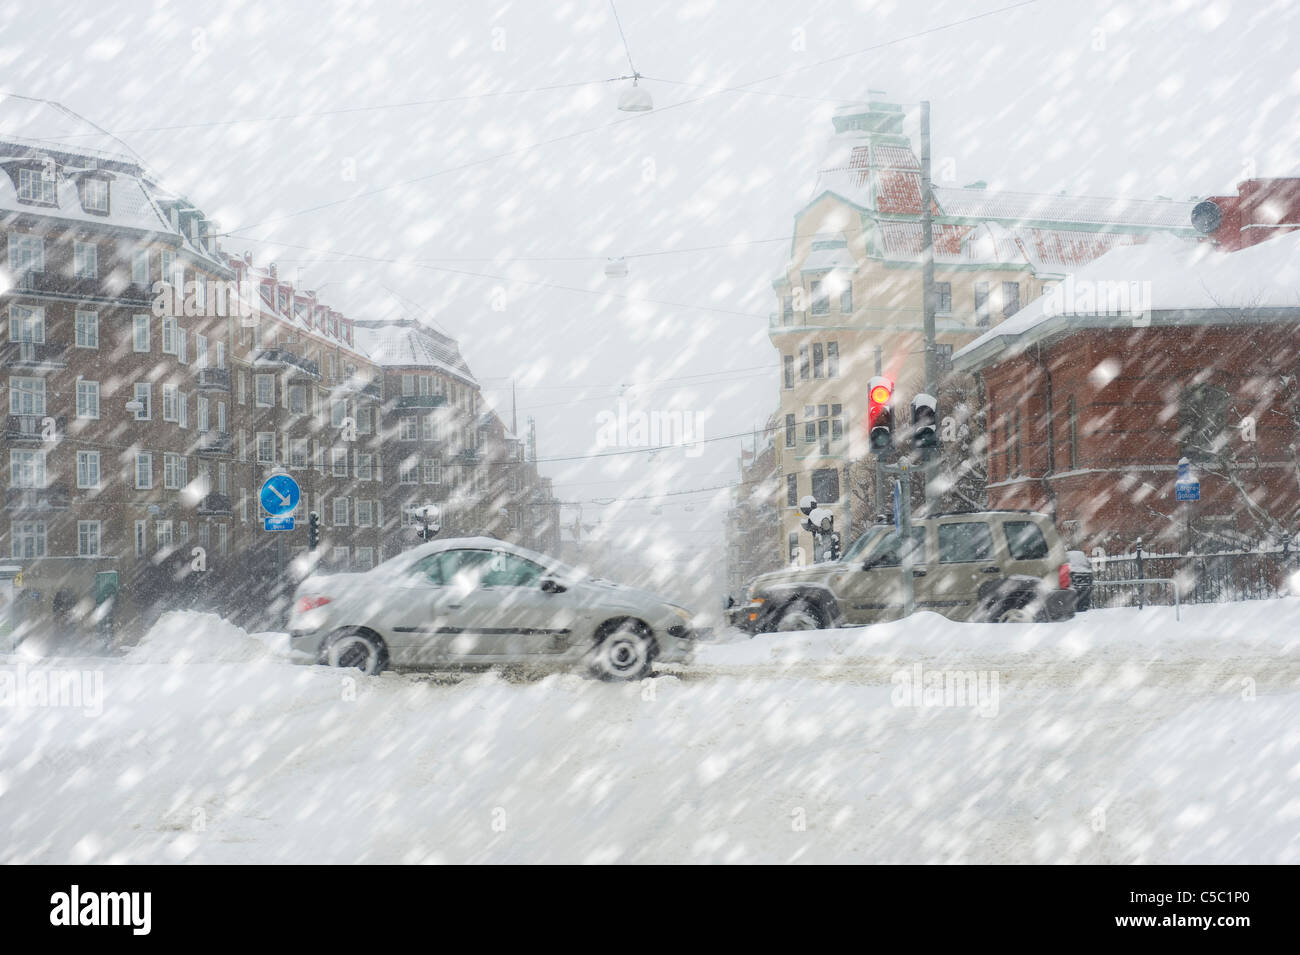 Snow chaos in city traffic against buildings - Stock Image